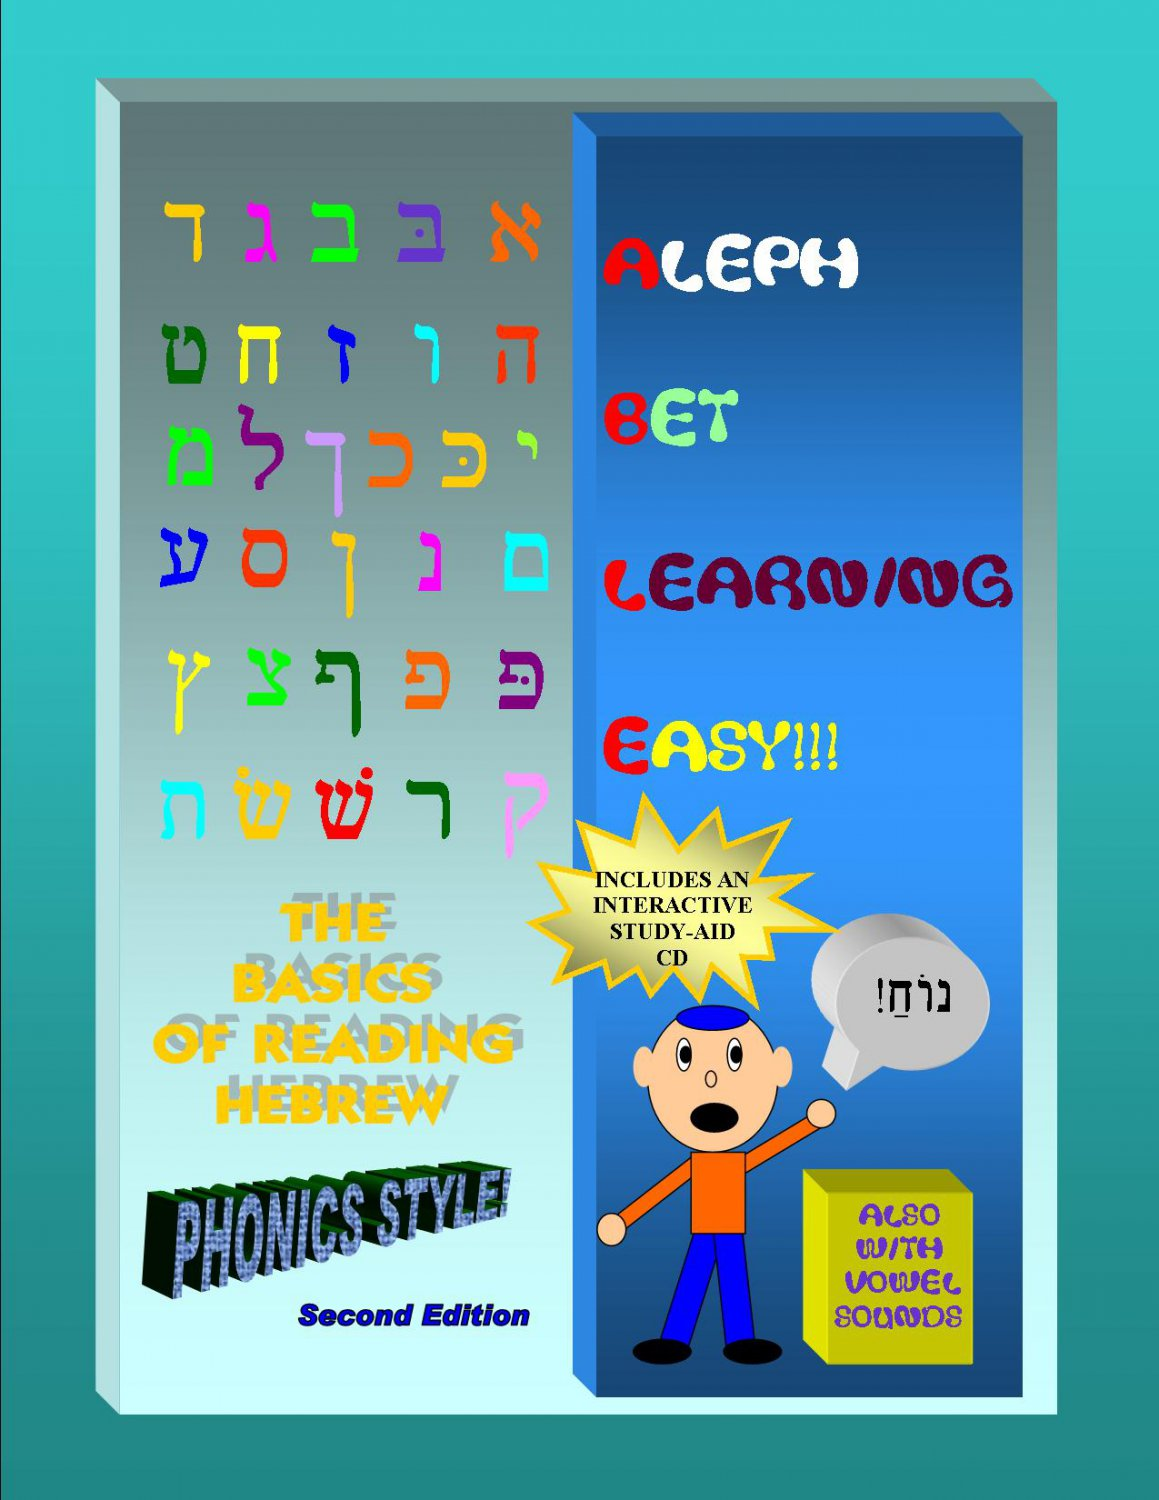 The Basics of Reading Hebrew: Phonics Style